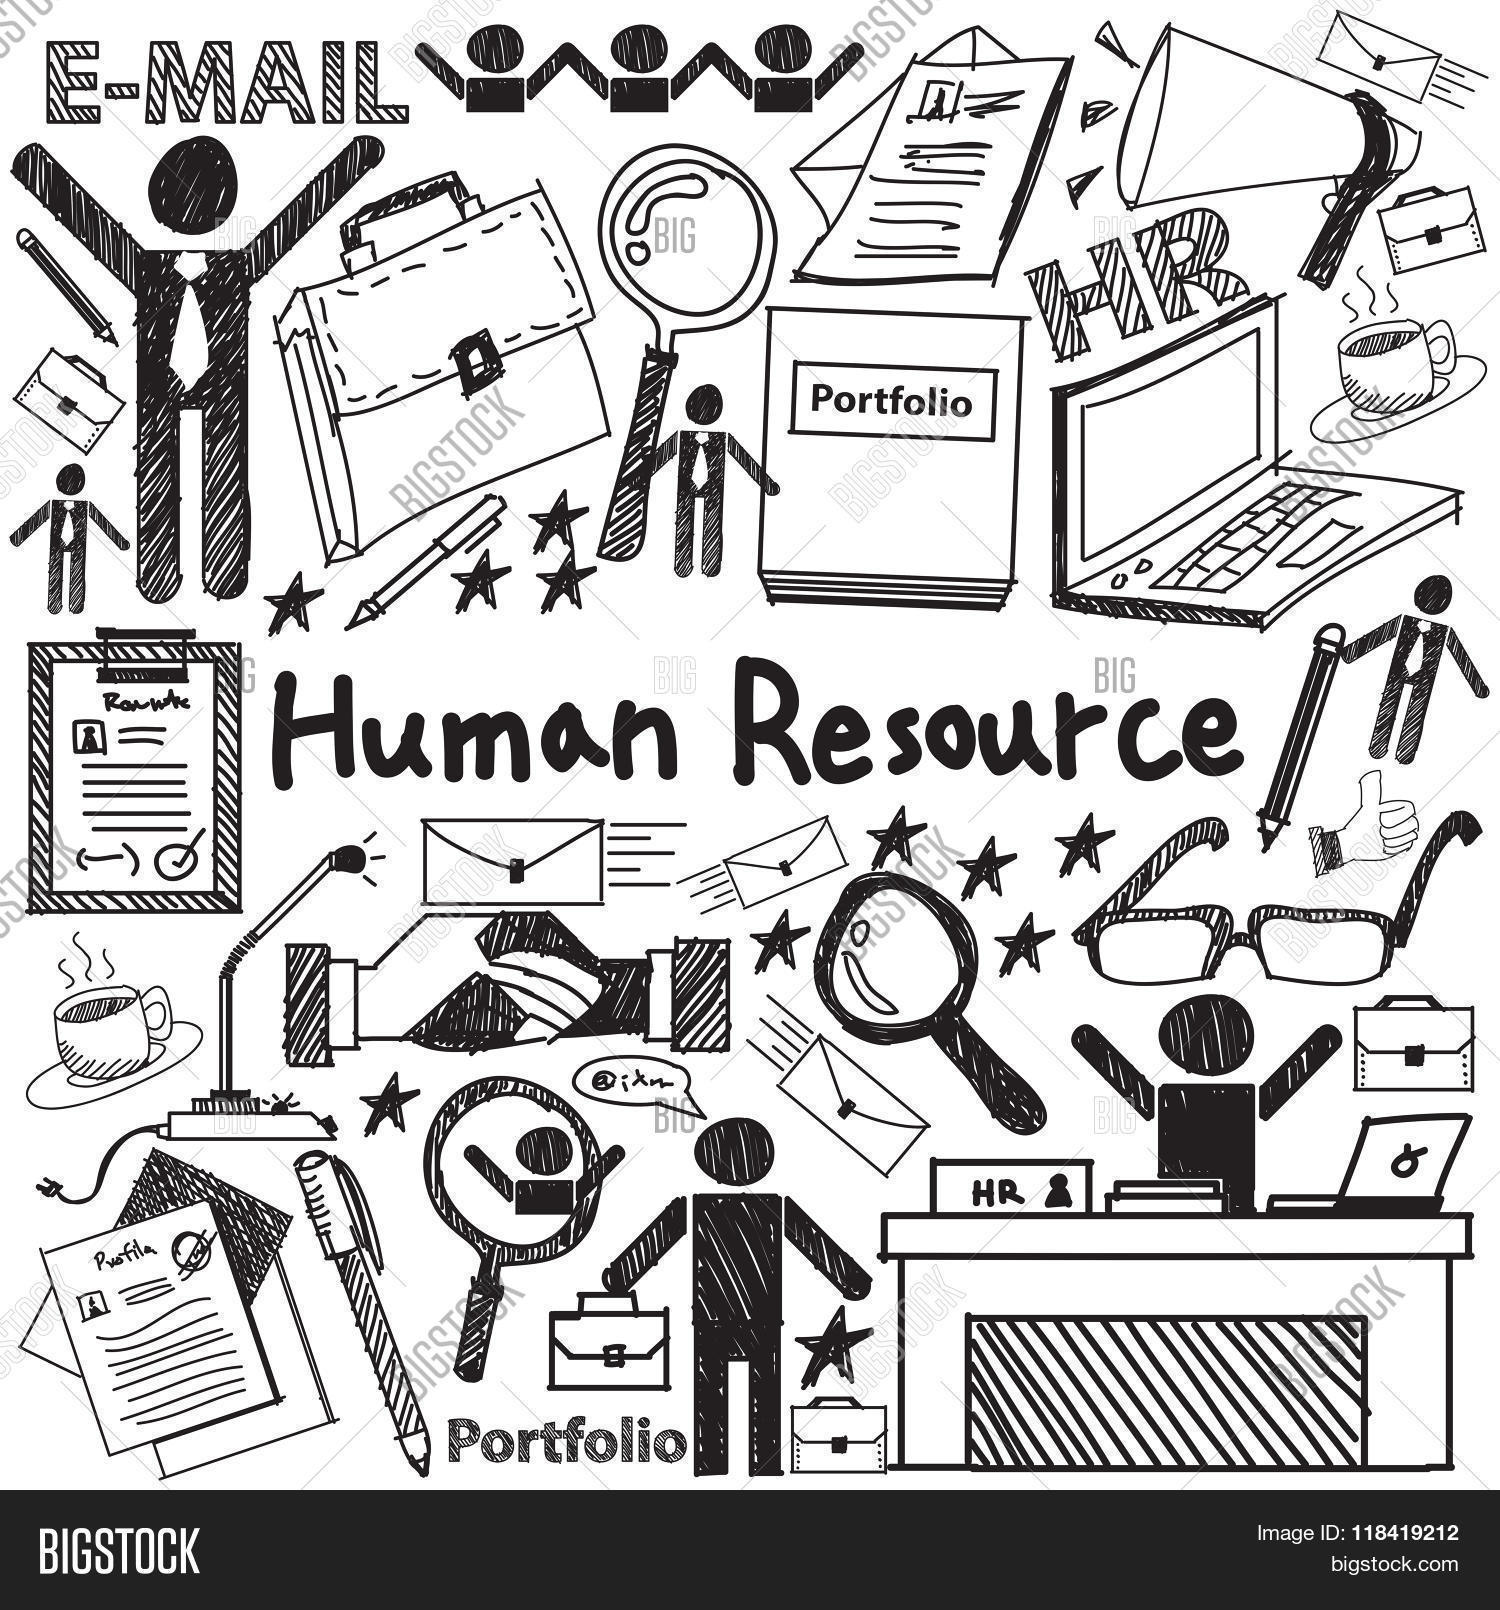 human resource vector photo free trial bigstock Facility Maintenance Supervisor Resume Samples human resource management in anization handwriting doodle icon sketch sign and symbol in white is